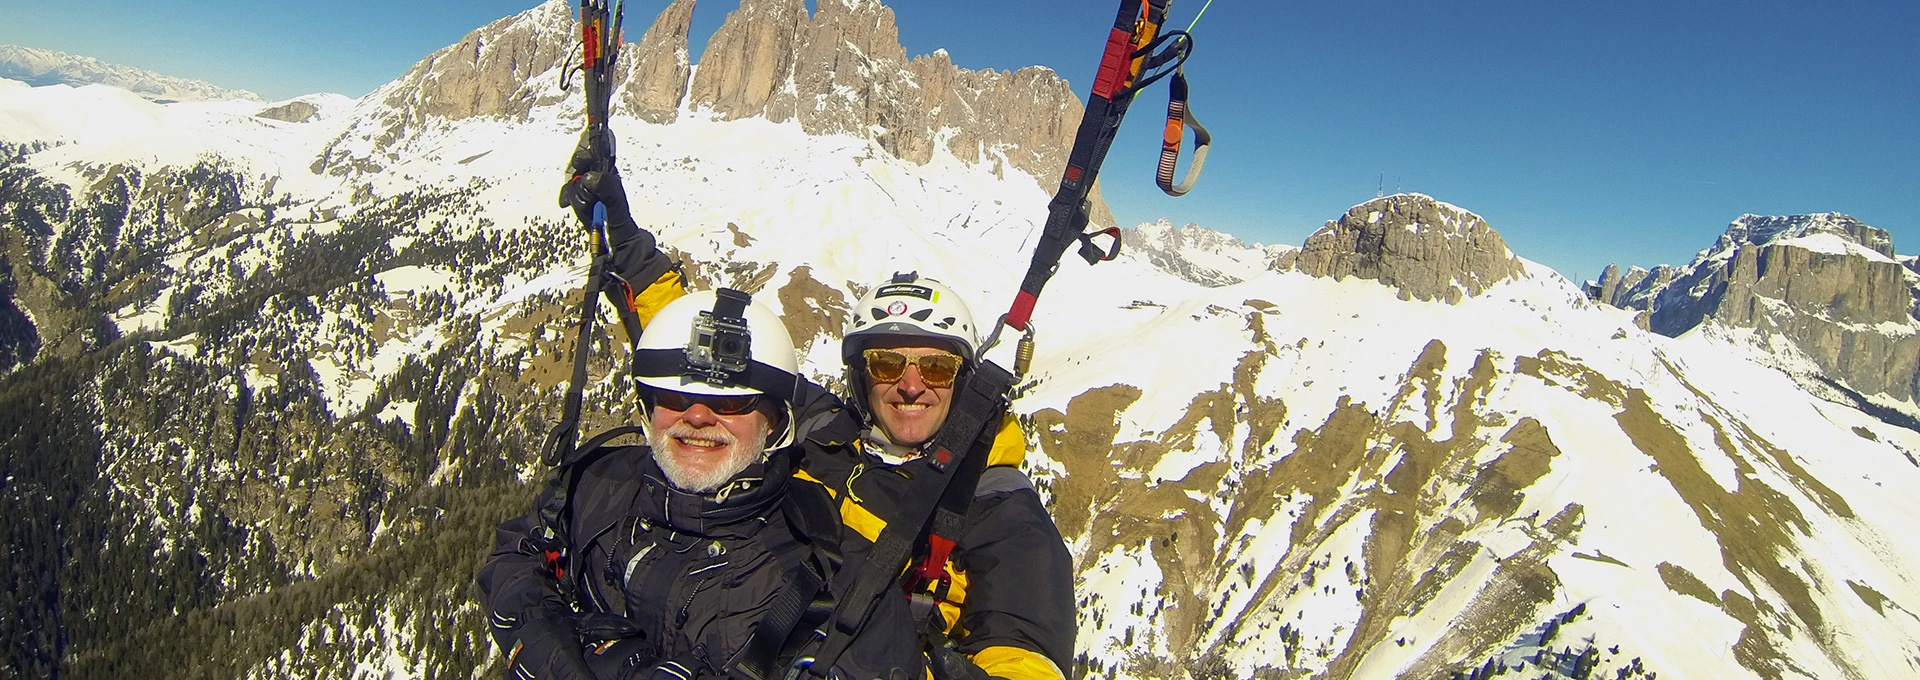 Flying high in the Dolomites